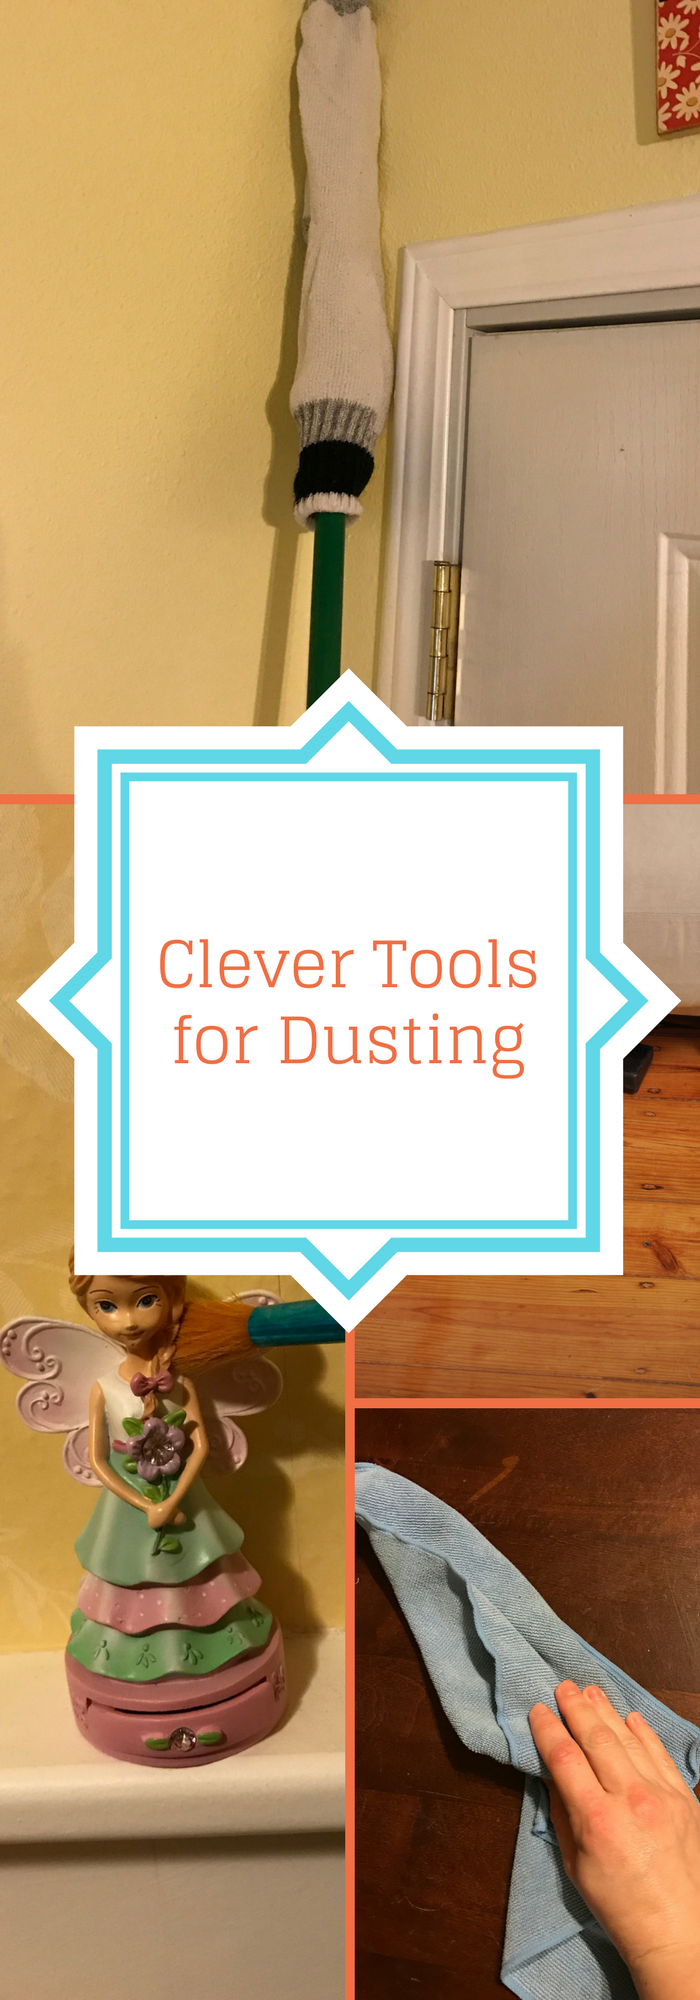 7 Clever Tools for Dusting #geniusmomtricks